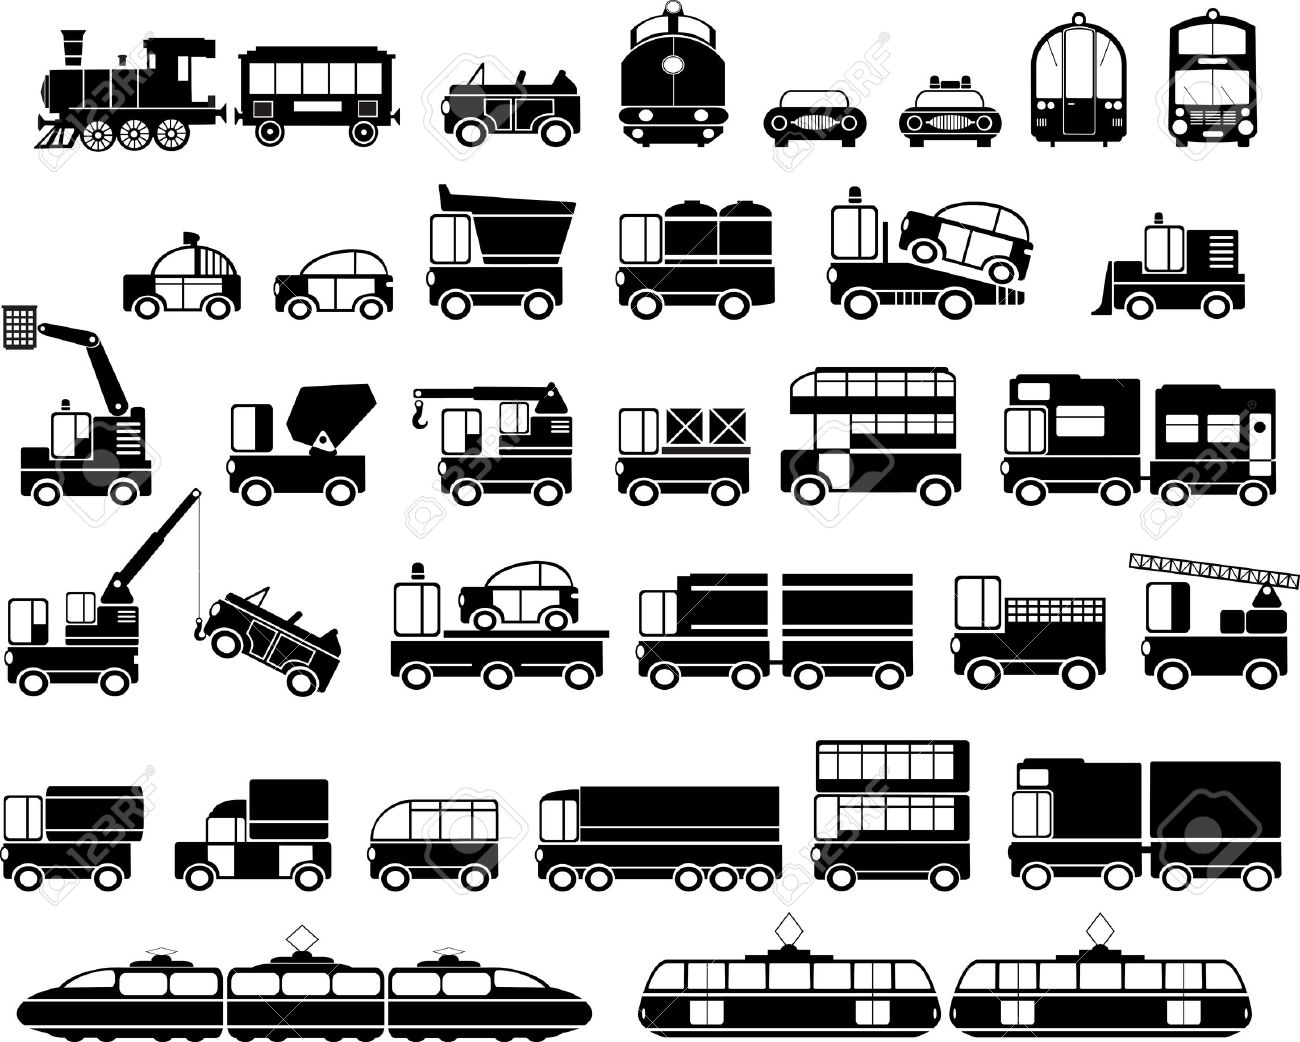 7,909 Train Engine Stock Illustrations, Cliparts And Royalty Free.